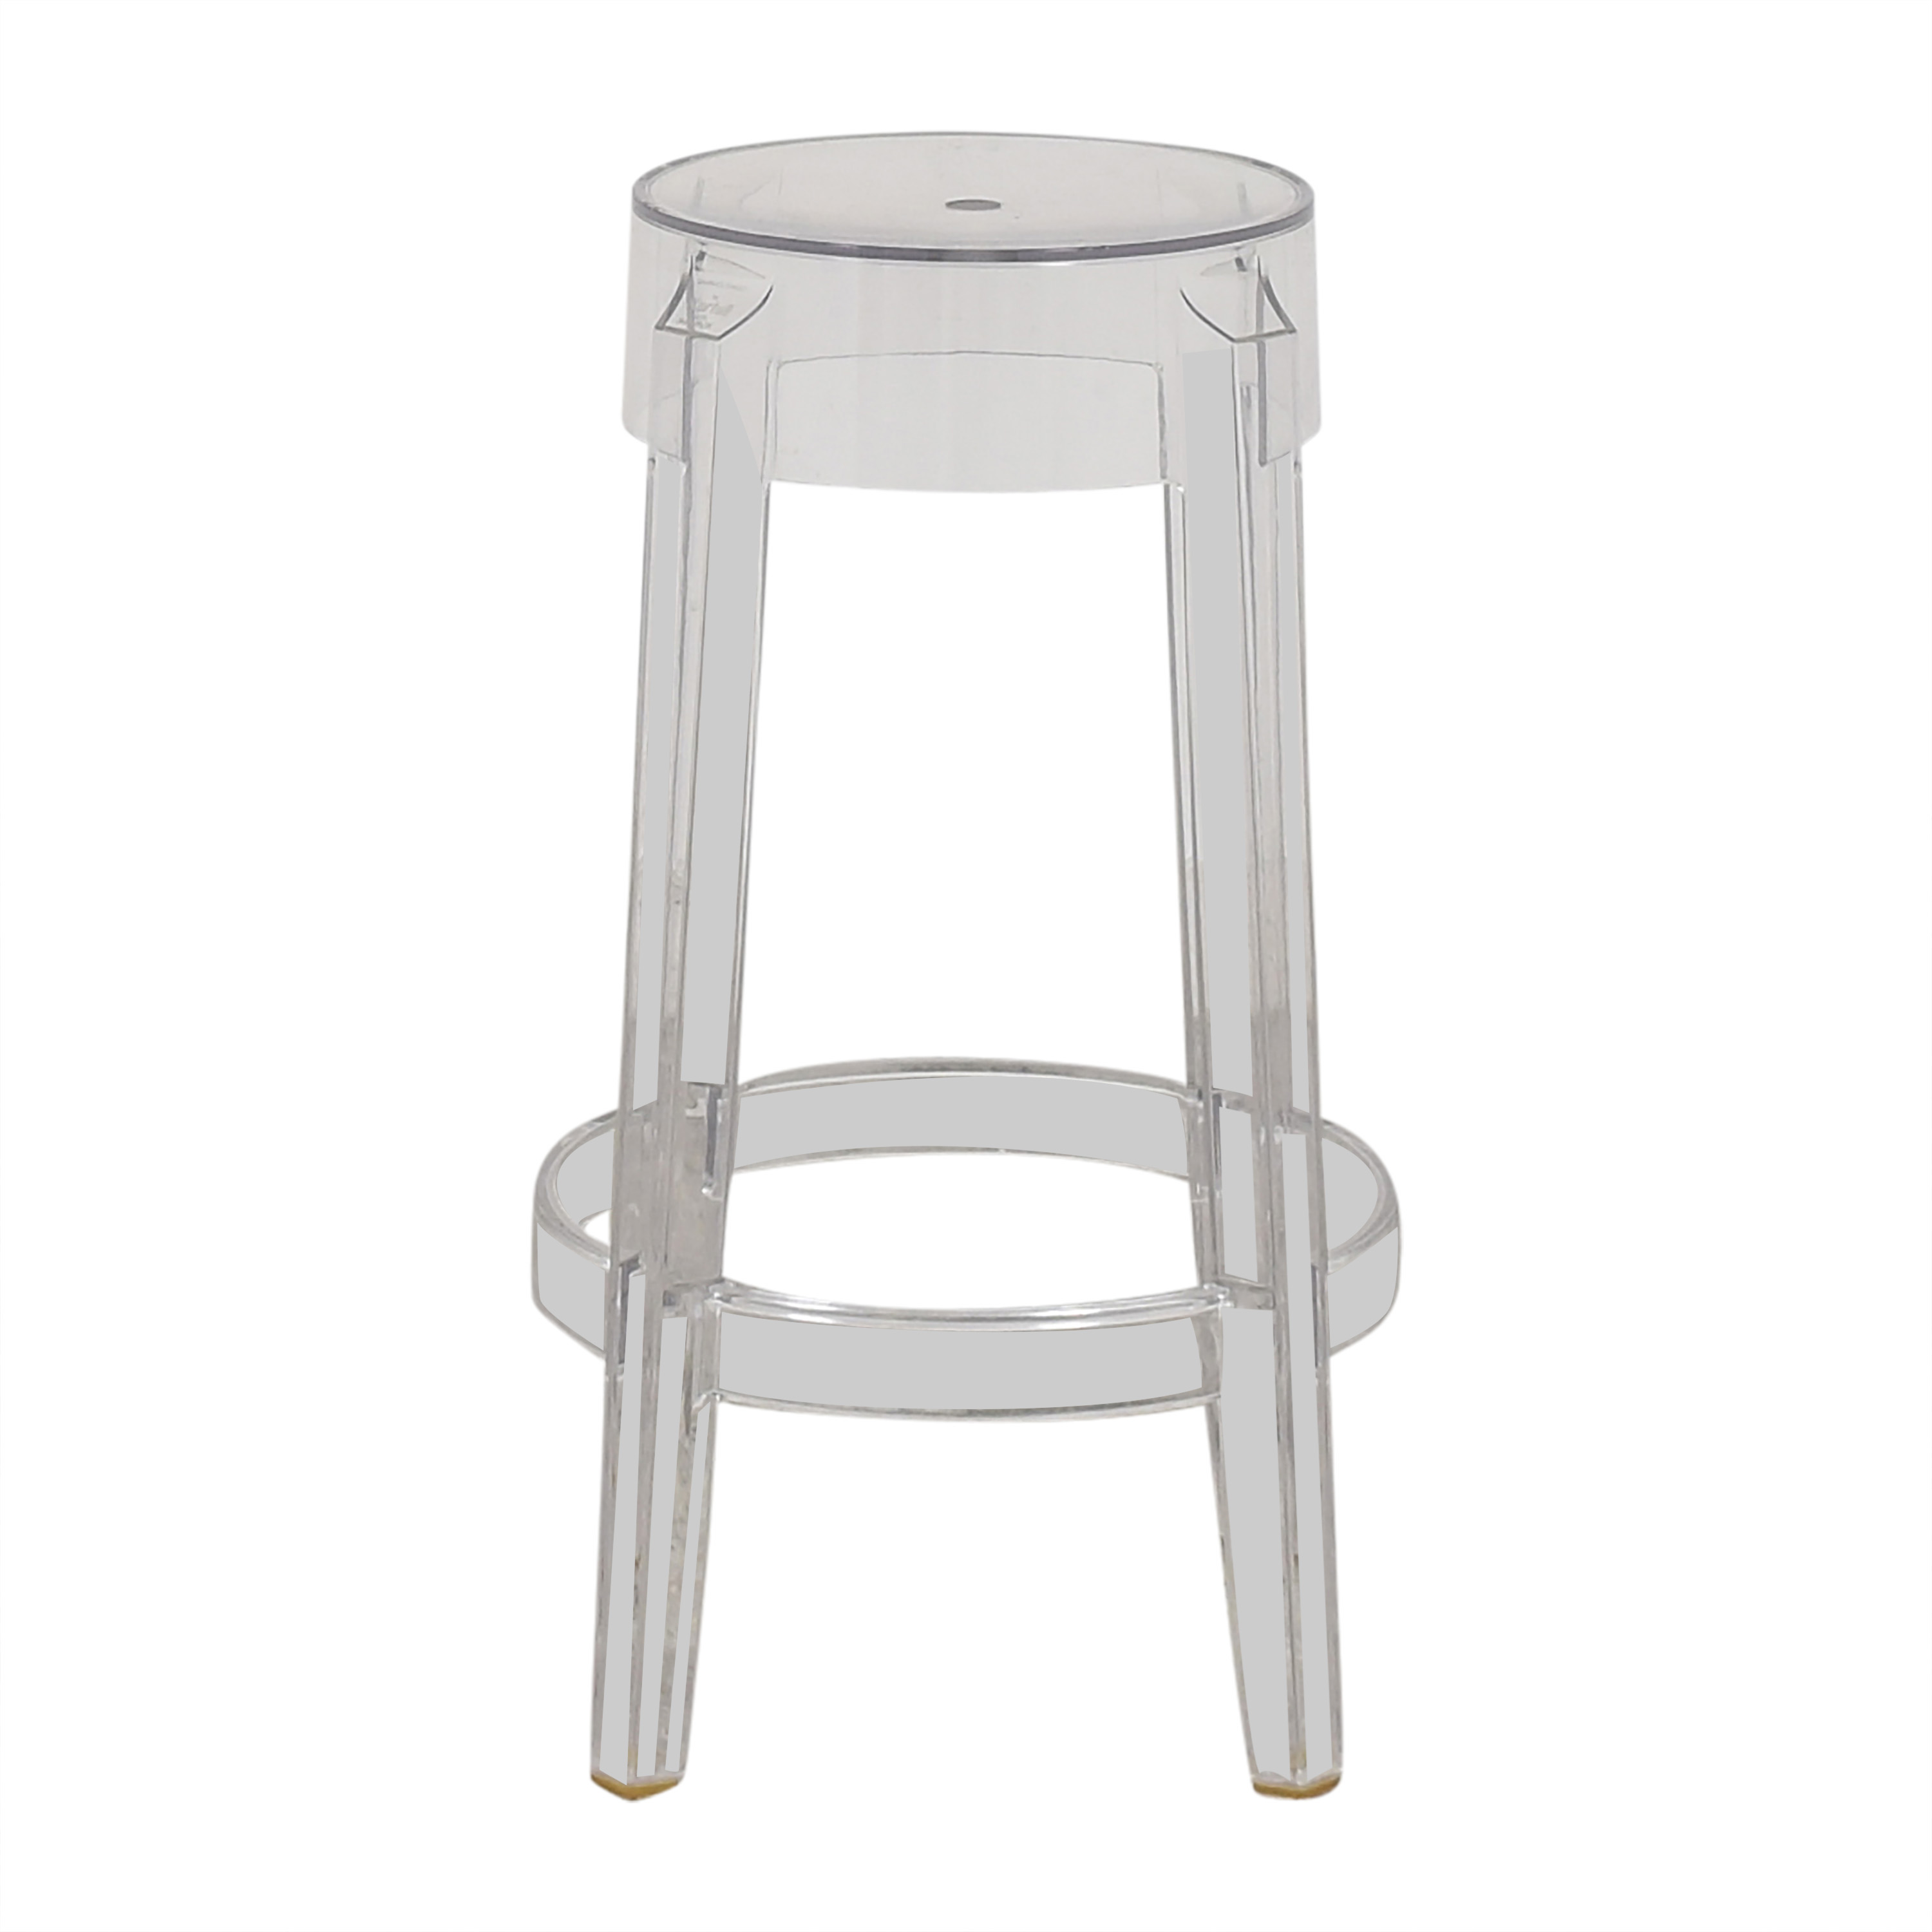 Kartell Kartell Charles Ghost Counter Stool by Phillipe Starck Chairs